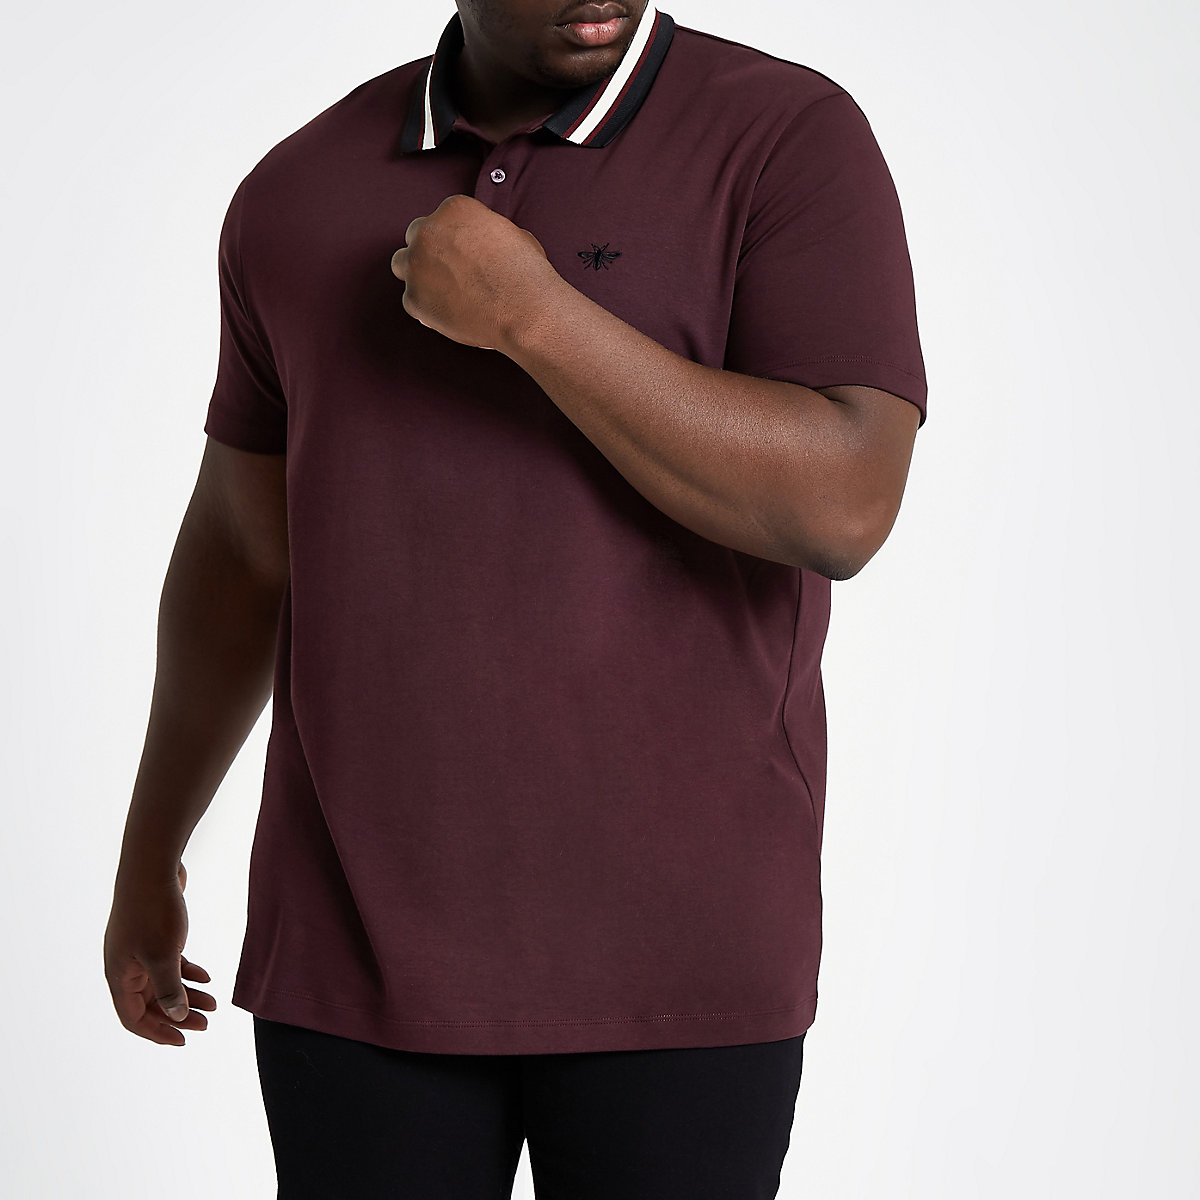 Big & Tall – Slim Fit Polohemd in Bordeaux